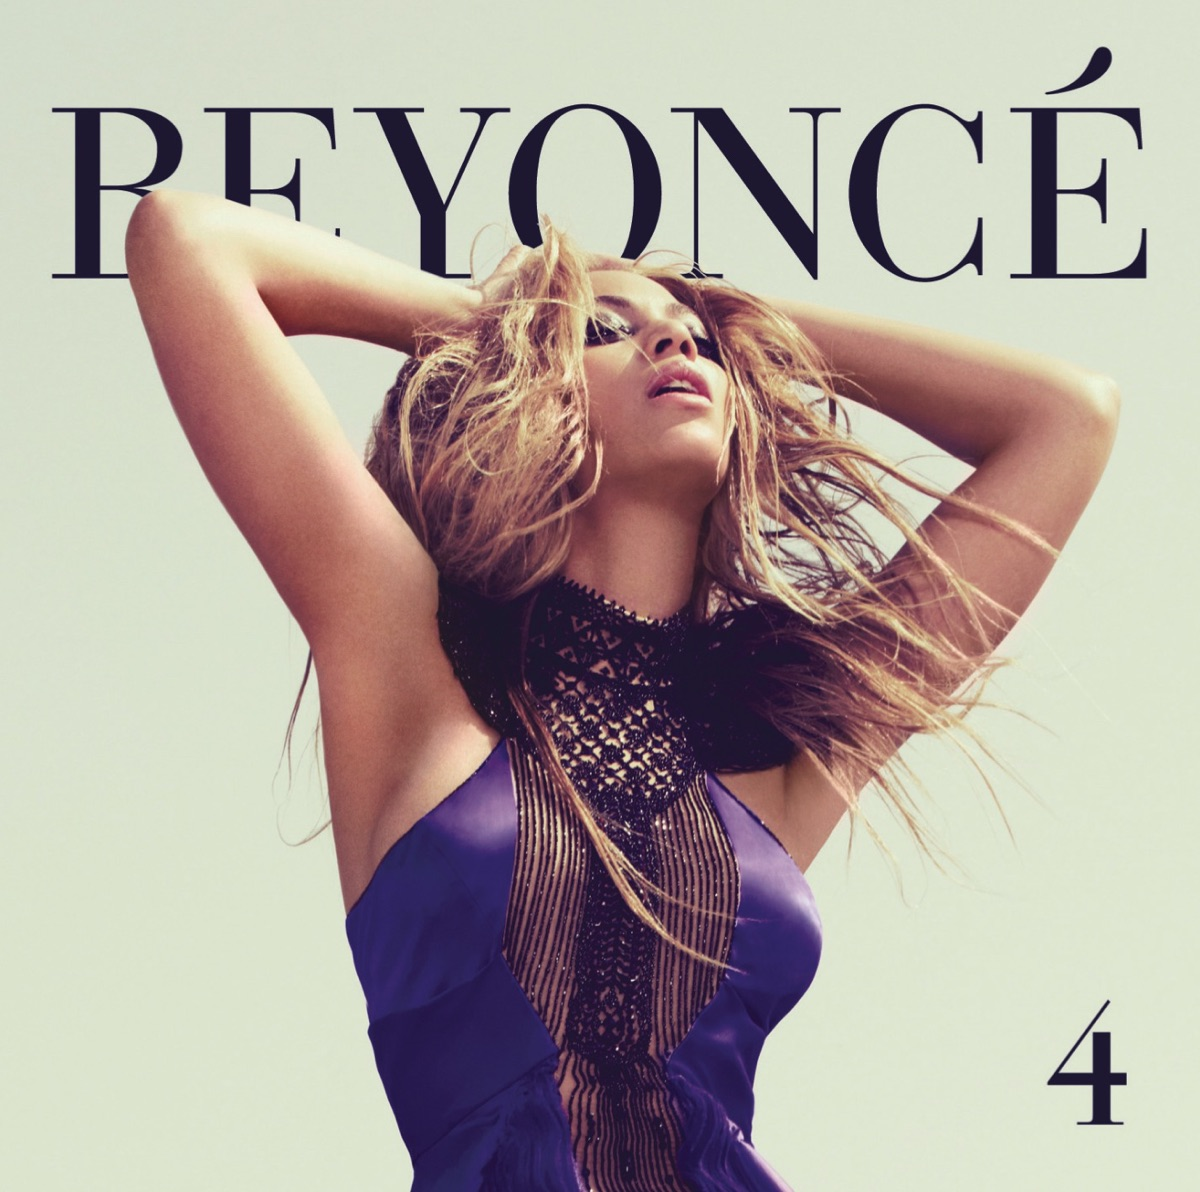 4 Expanded Edition Beyoncé CD cover